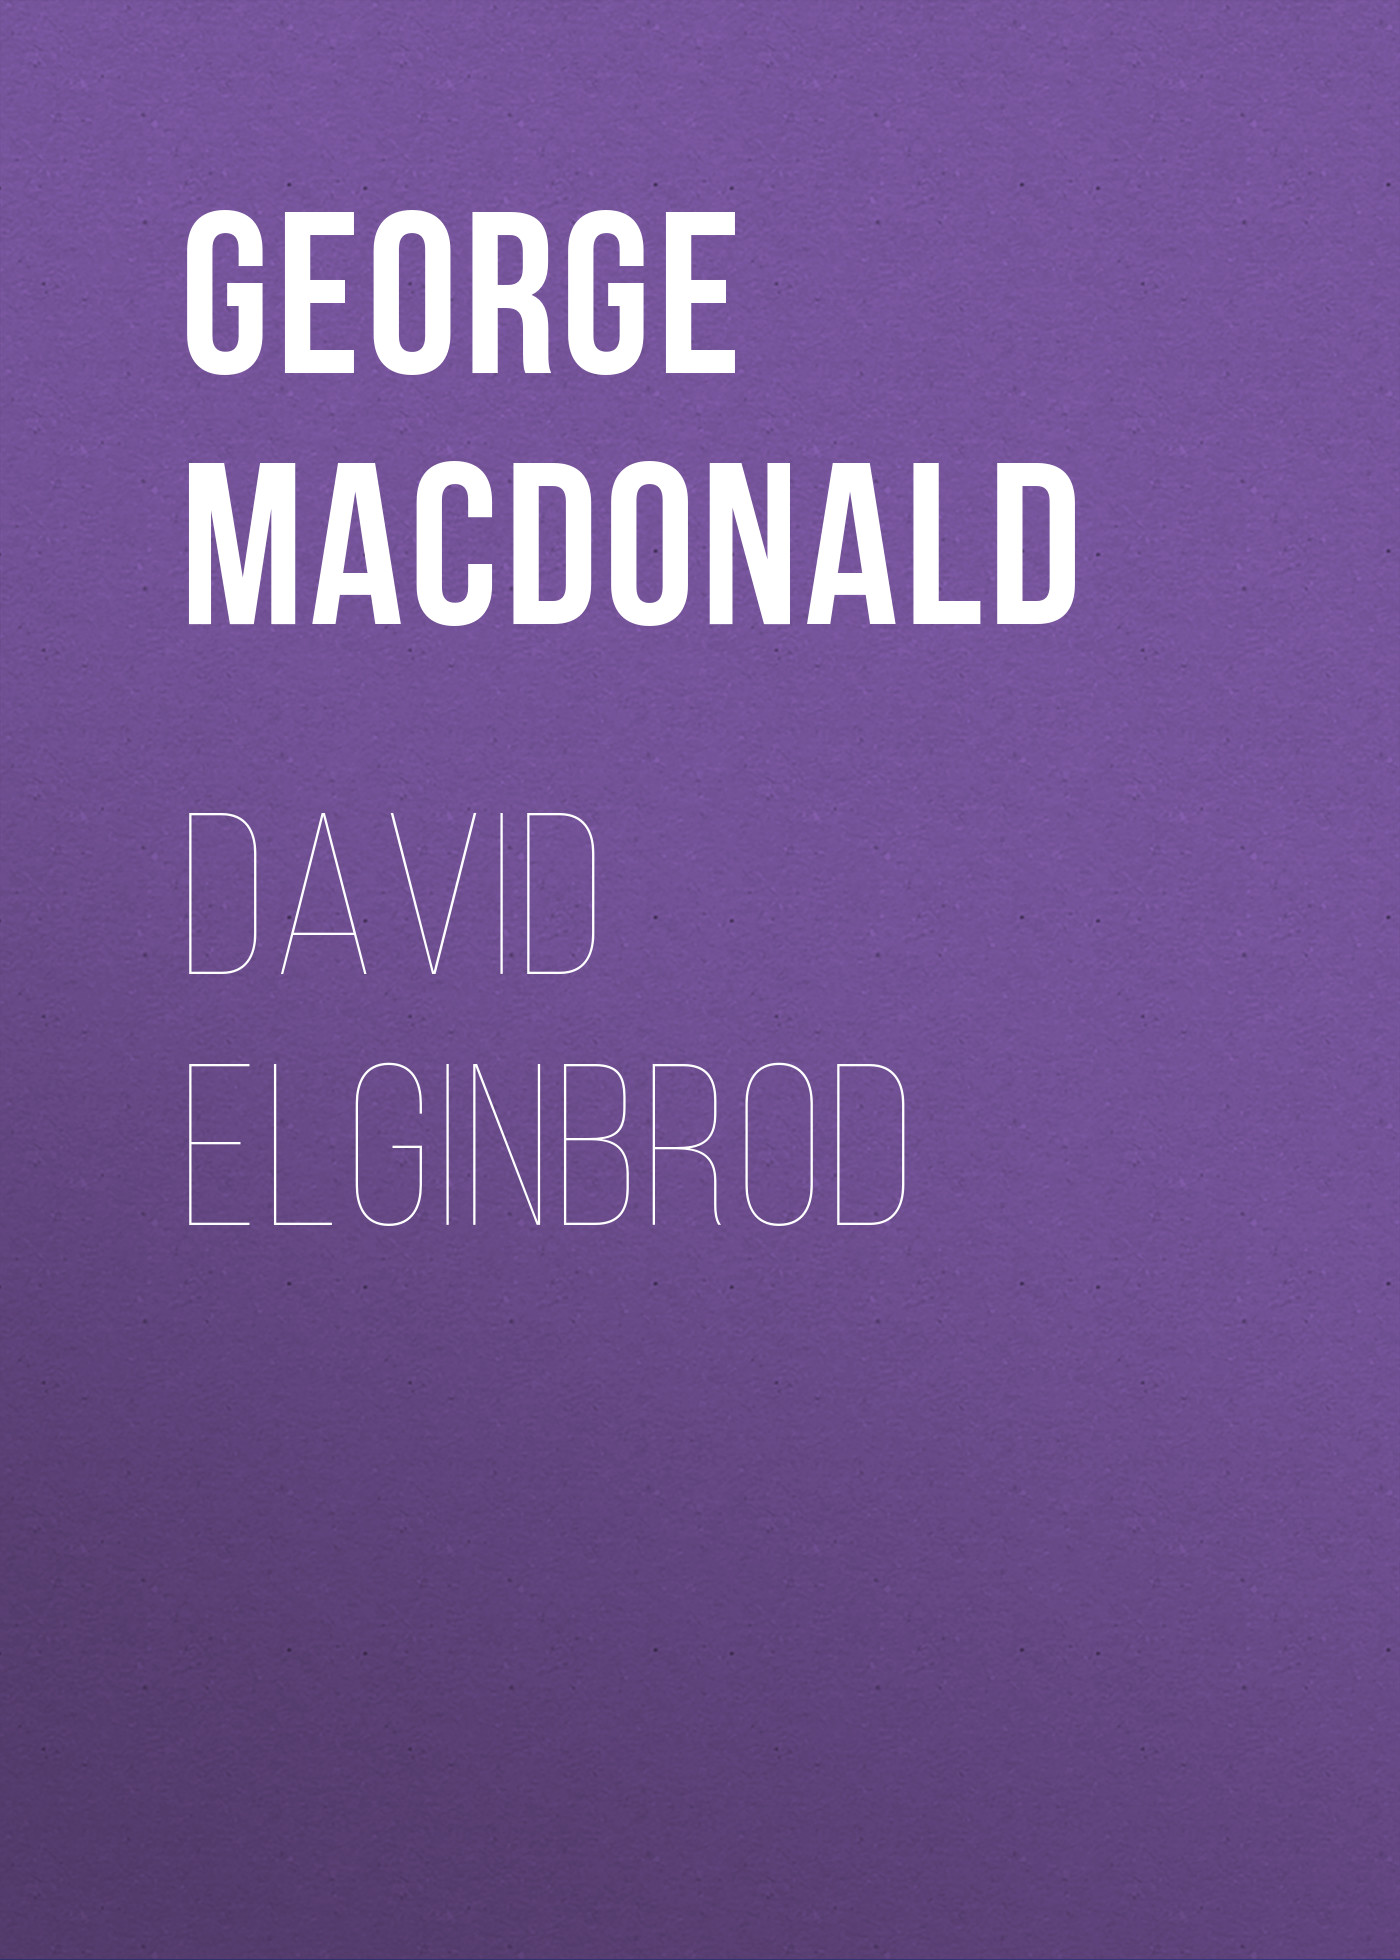 все цены на George MacDonald David Elginbrod онлайн